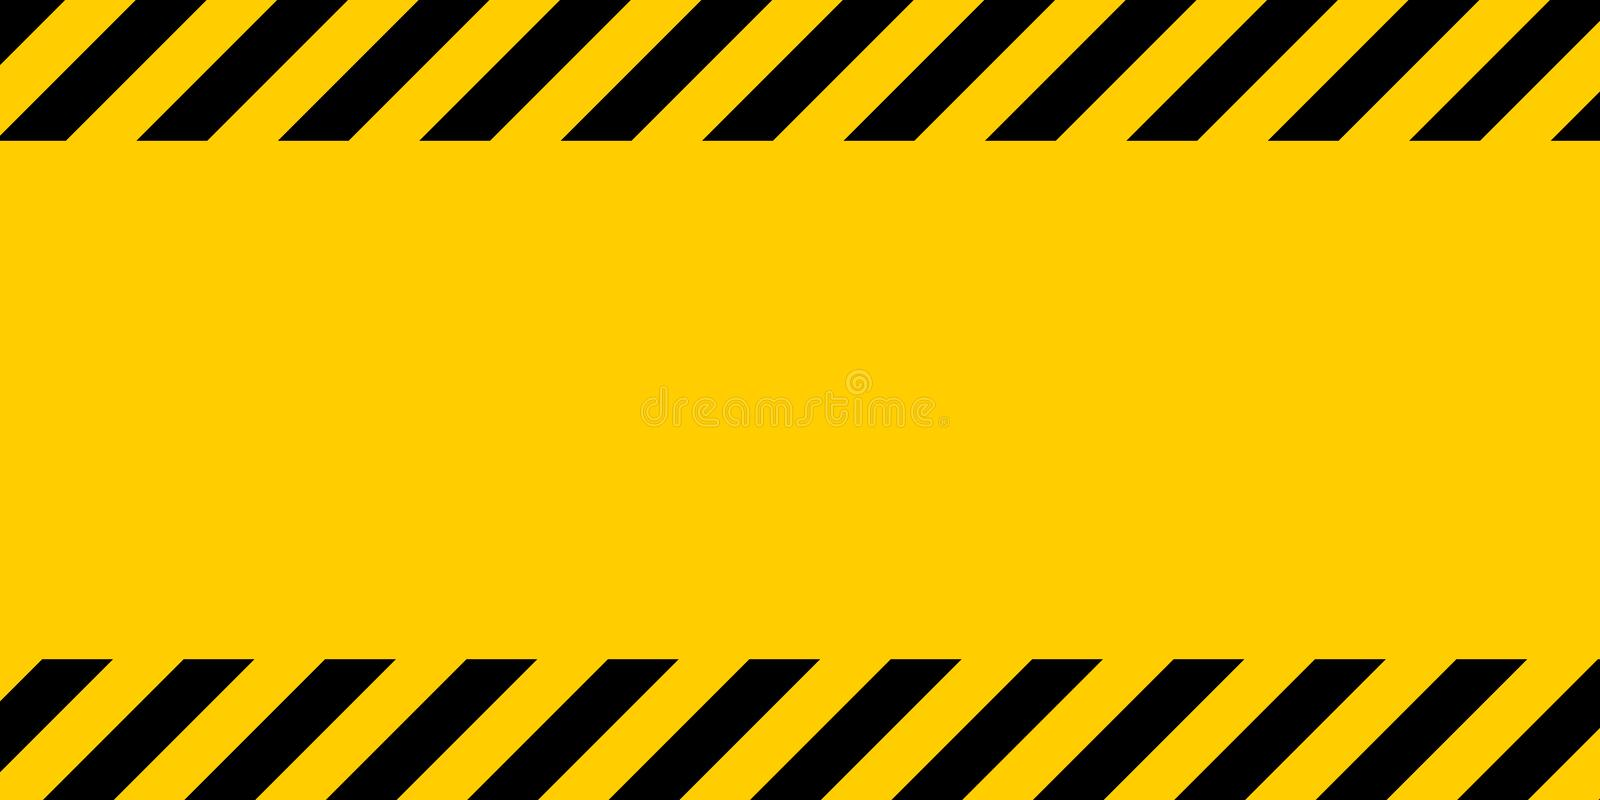 Black and yellow warning line striped rectangular background, yellow and black stripes on the diagonal royalty free illustration